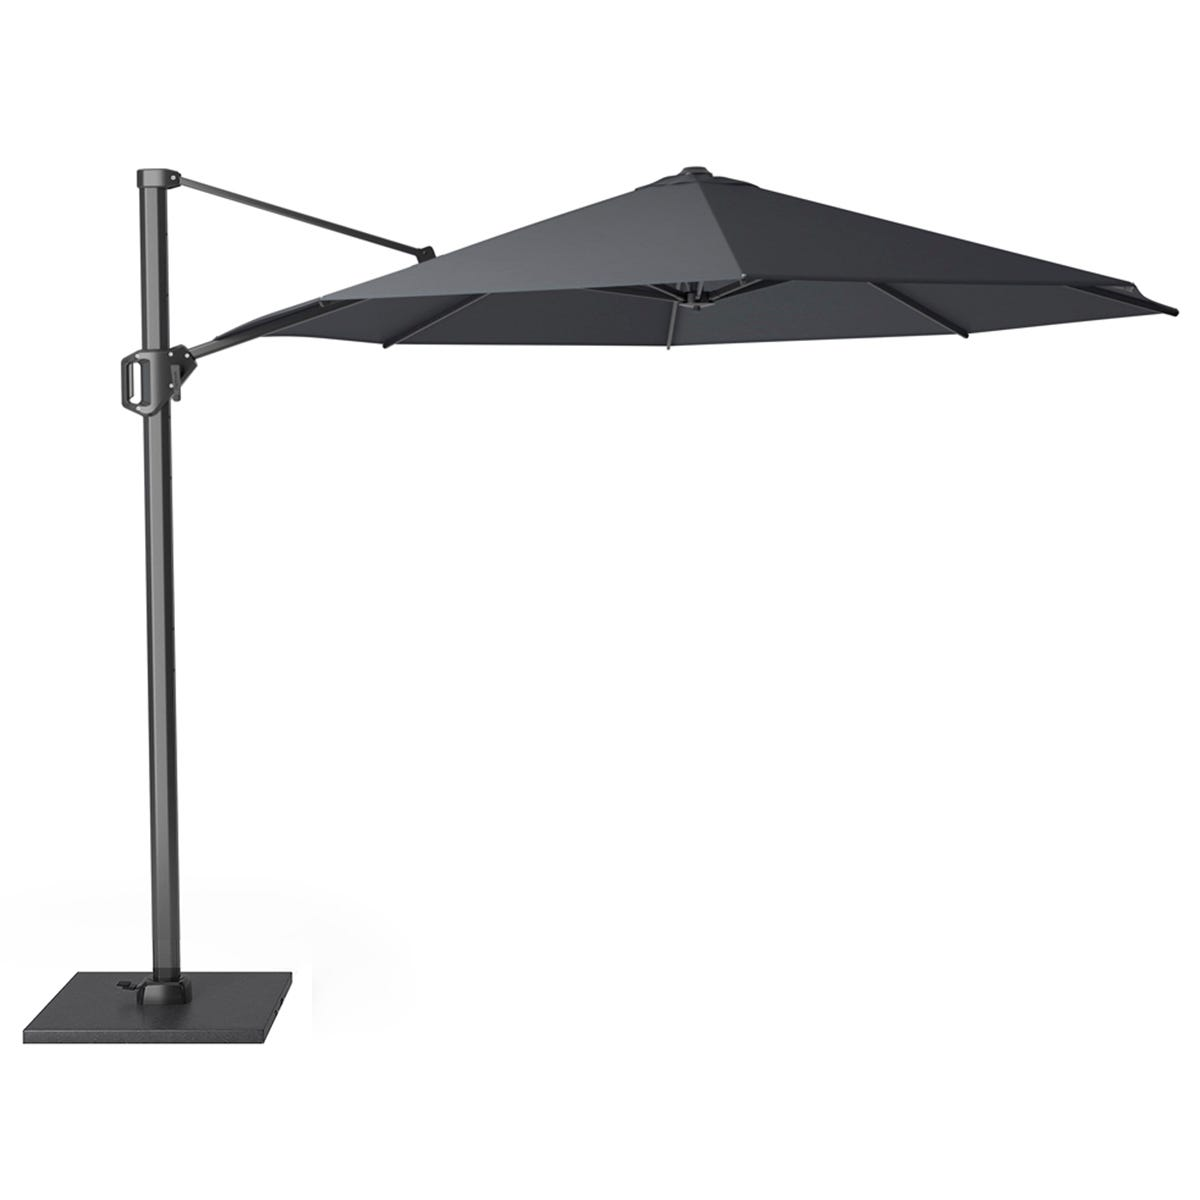 Pacific Lifestyle Challenger T1 3.5m Round Anthracite Parasol with Burnt Black Granite 90KG Parasol Base